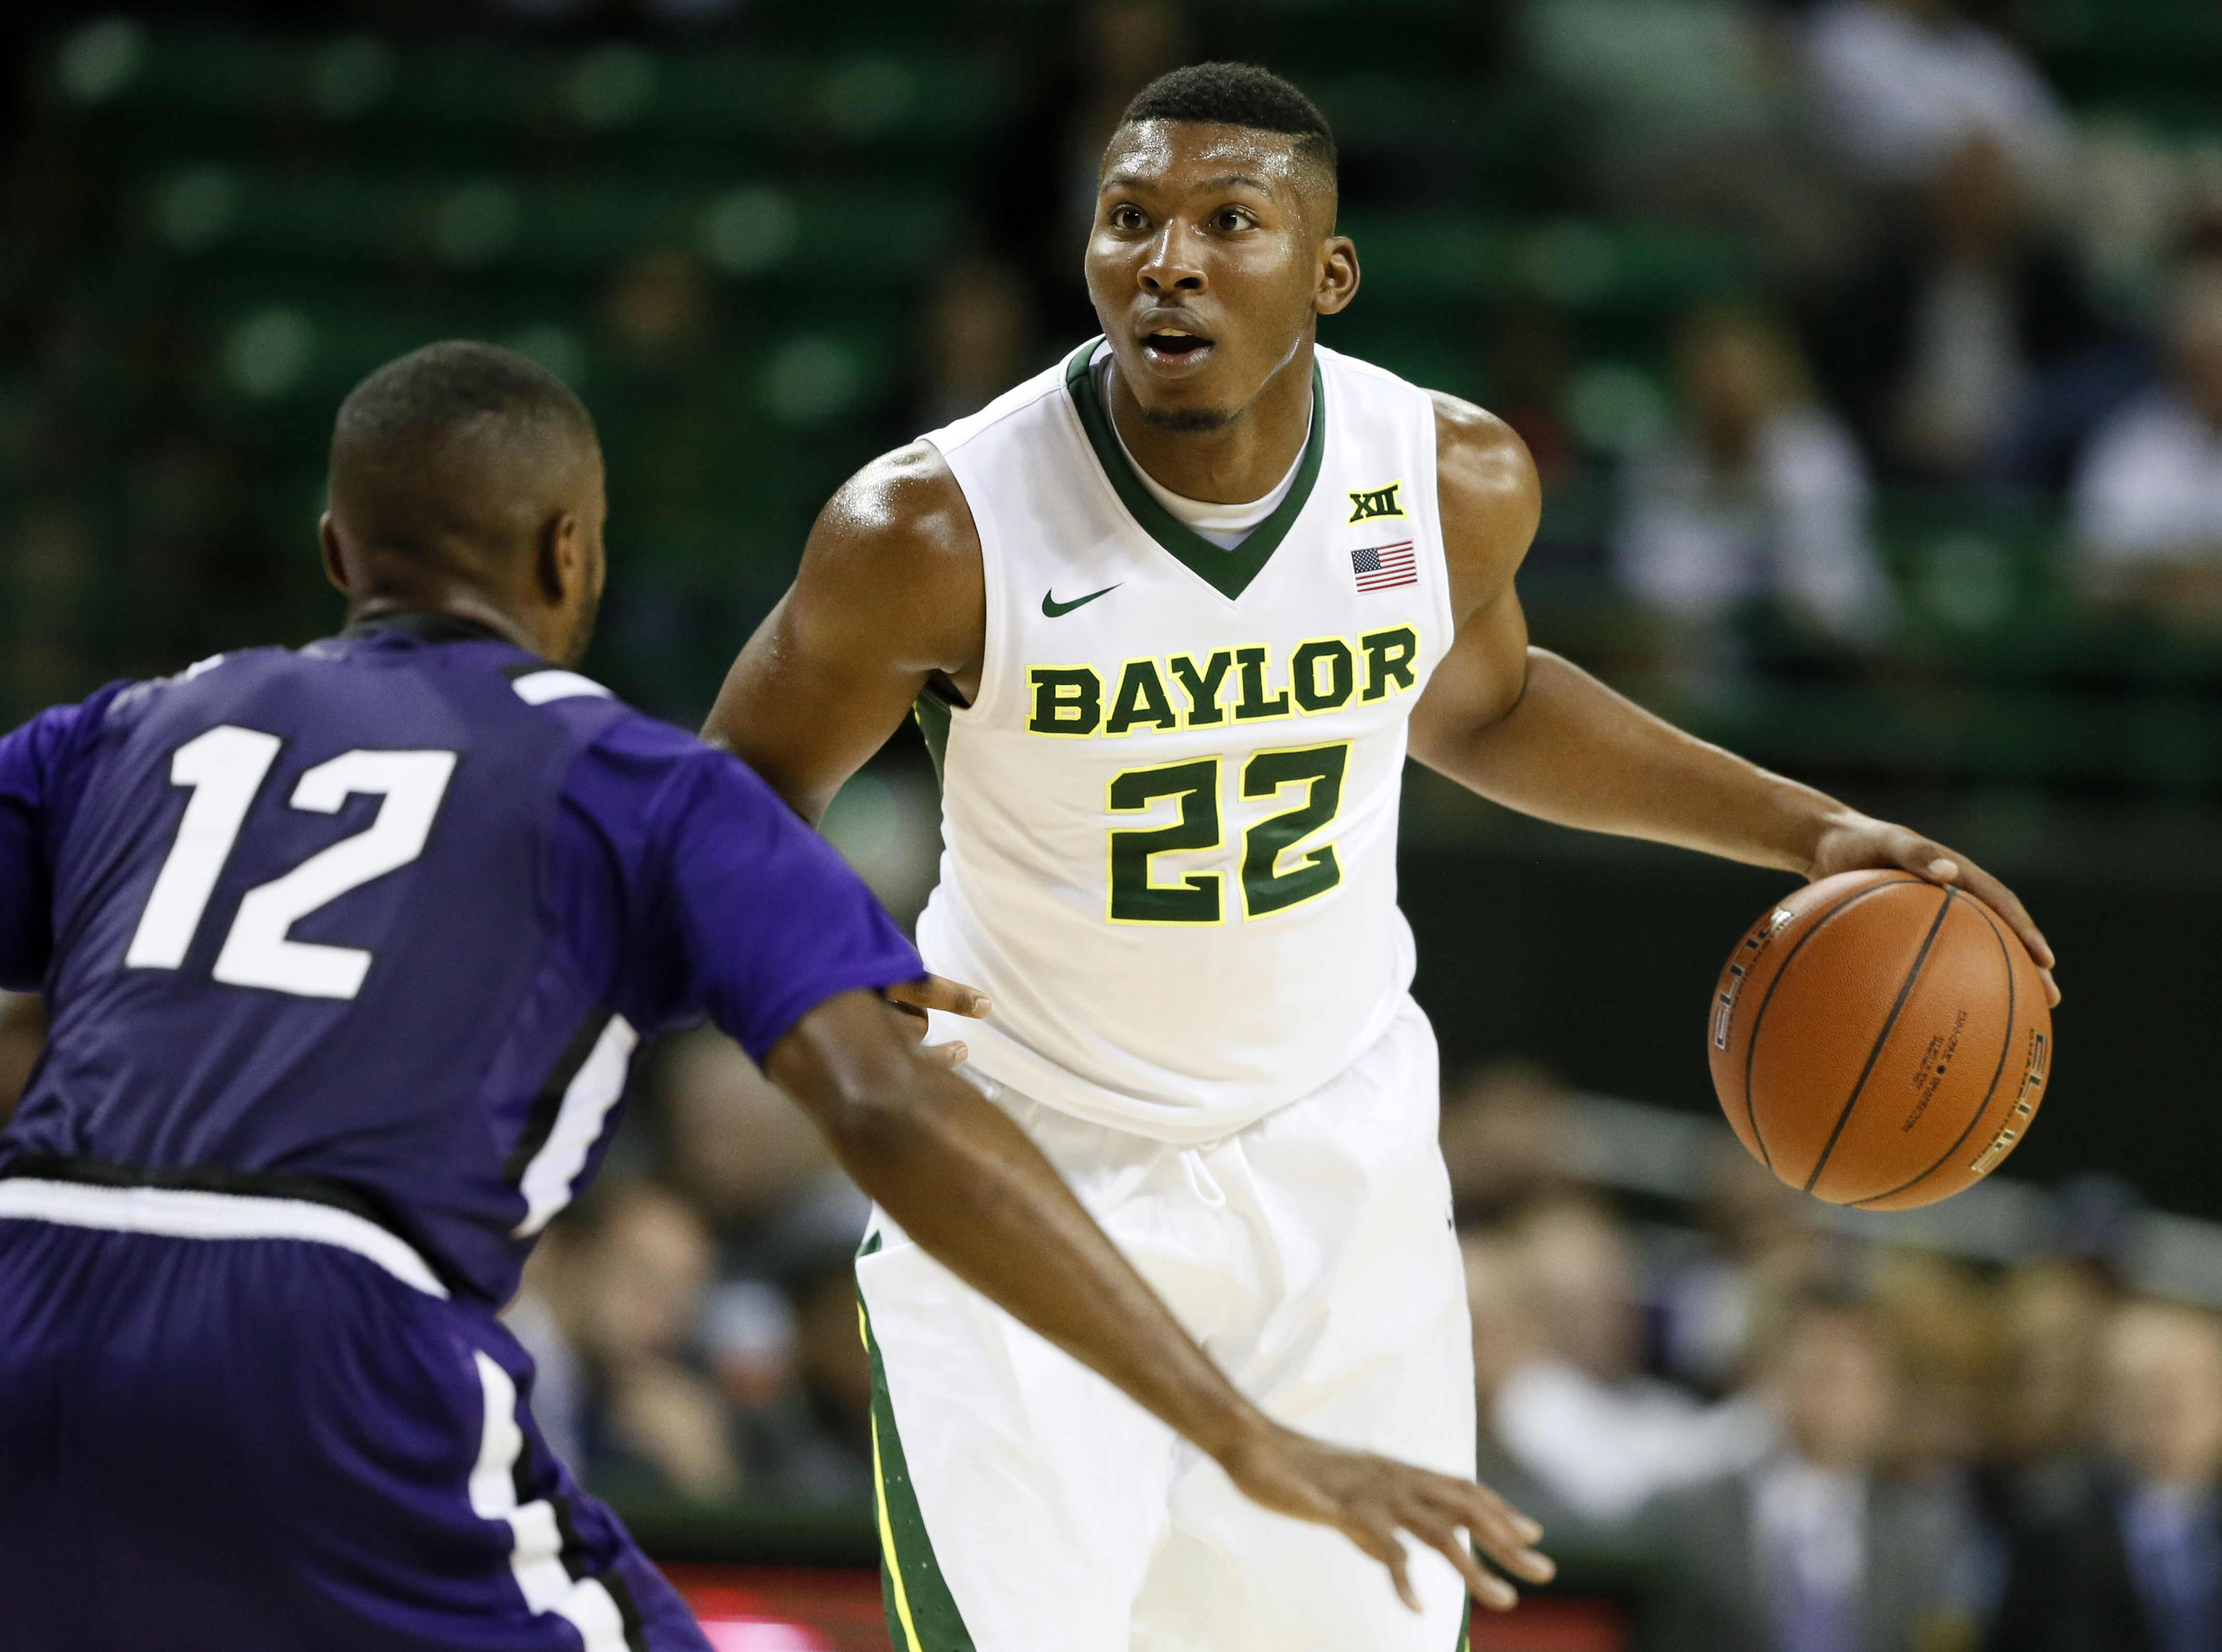 FILE - In this Nov. 13, 2015, file photo, Stephen F. Austin' Dallas Cameron (12) defends as Baylor guard King McClure (22) moves the ball up court in the second half of an NCAA college basketball game, in Waco, Texas. When King McClure was diagnosed with